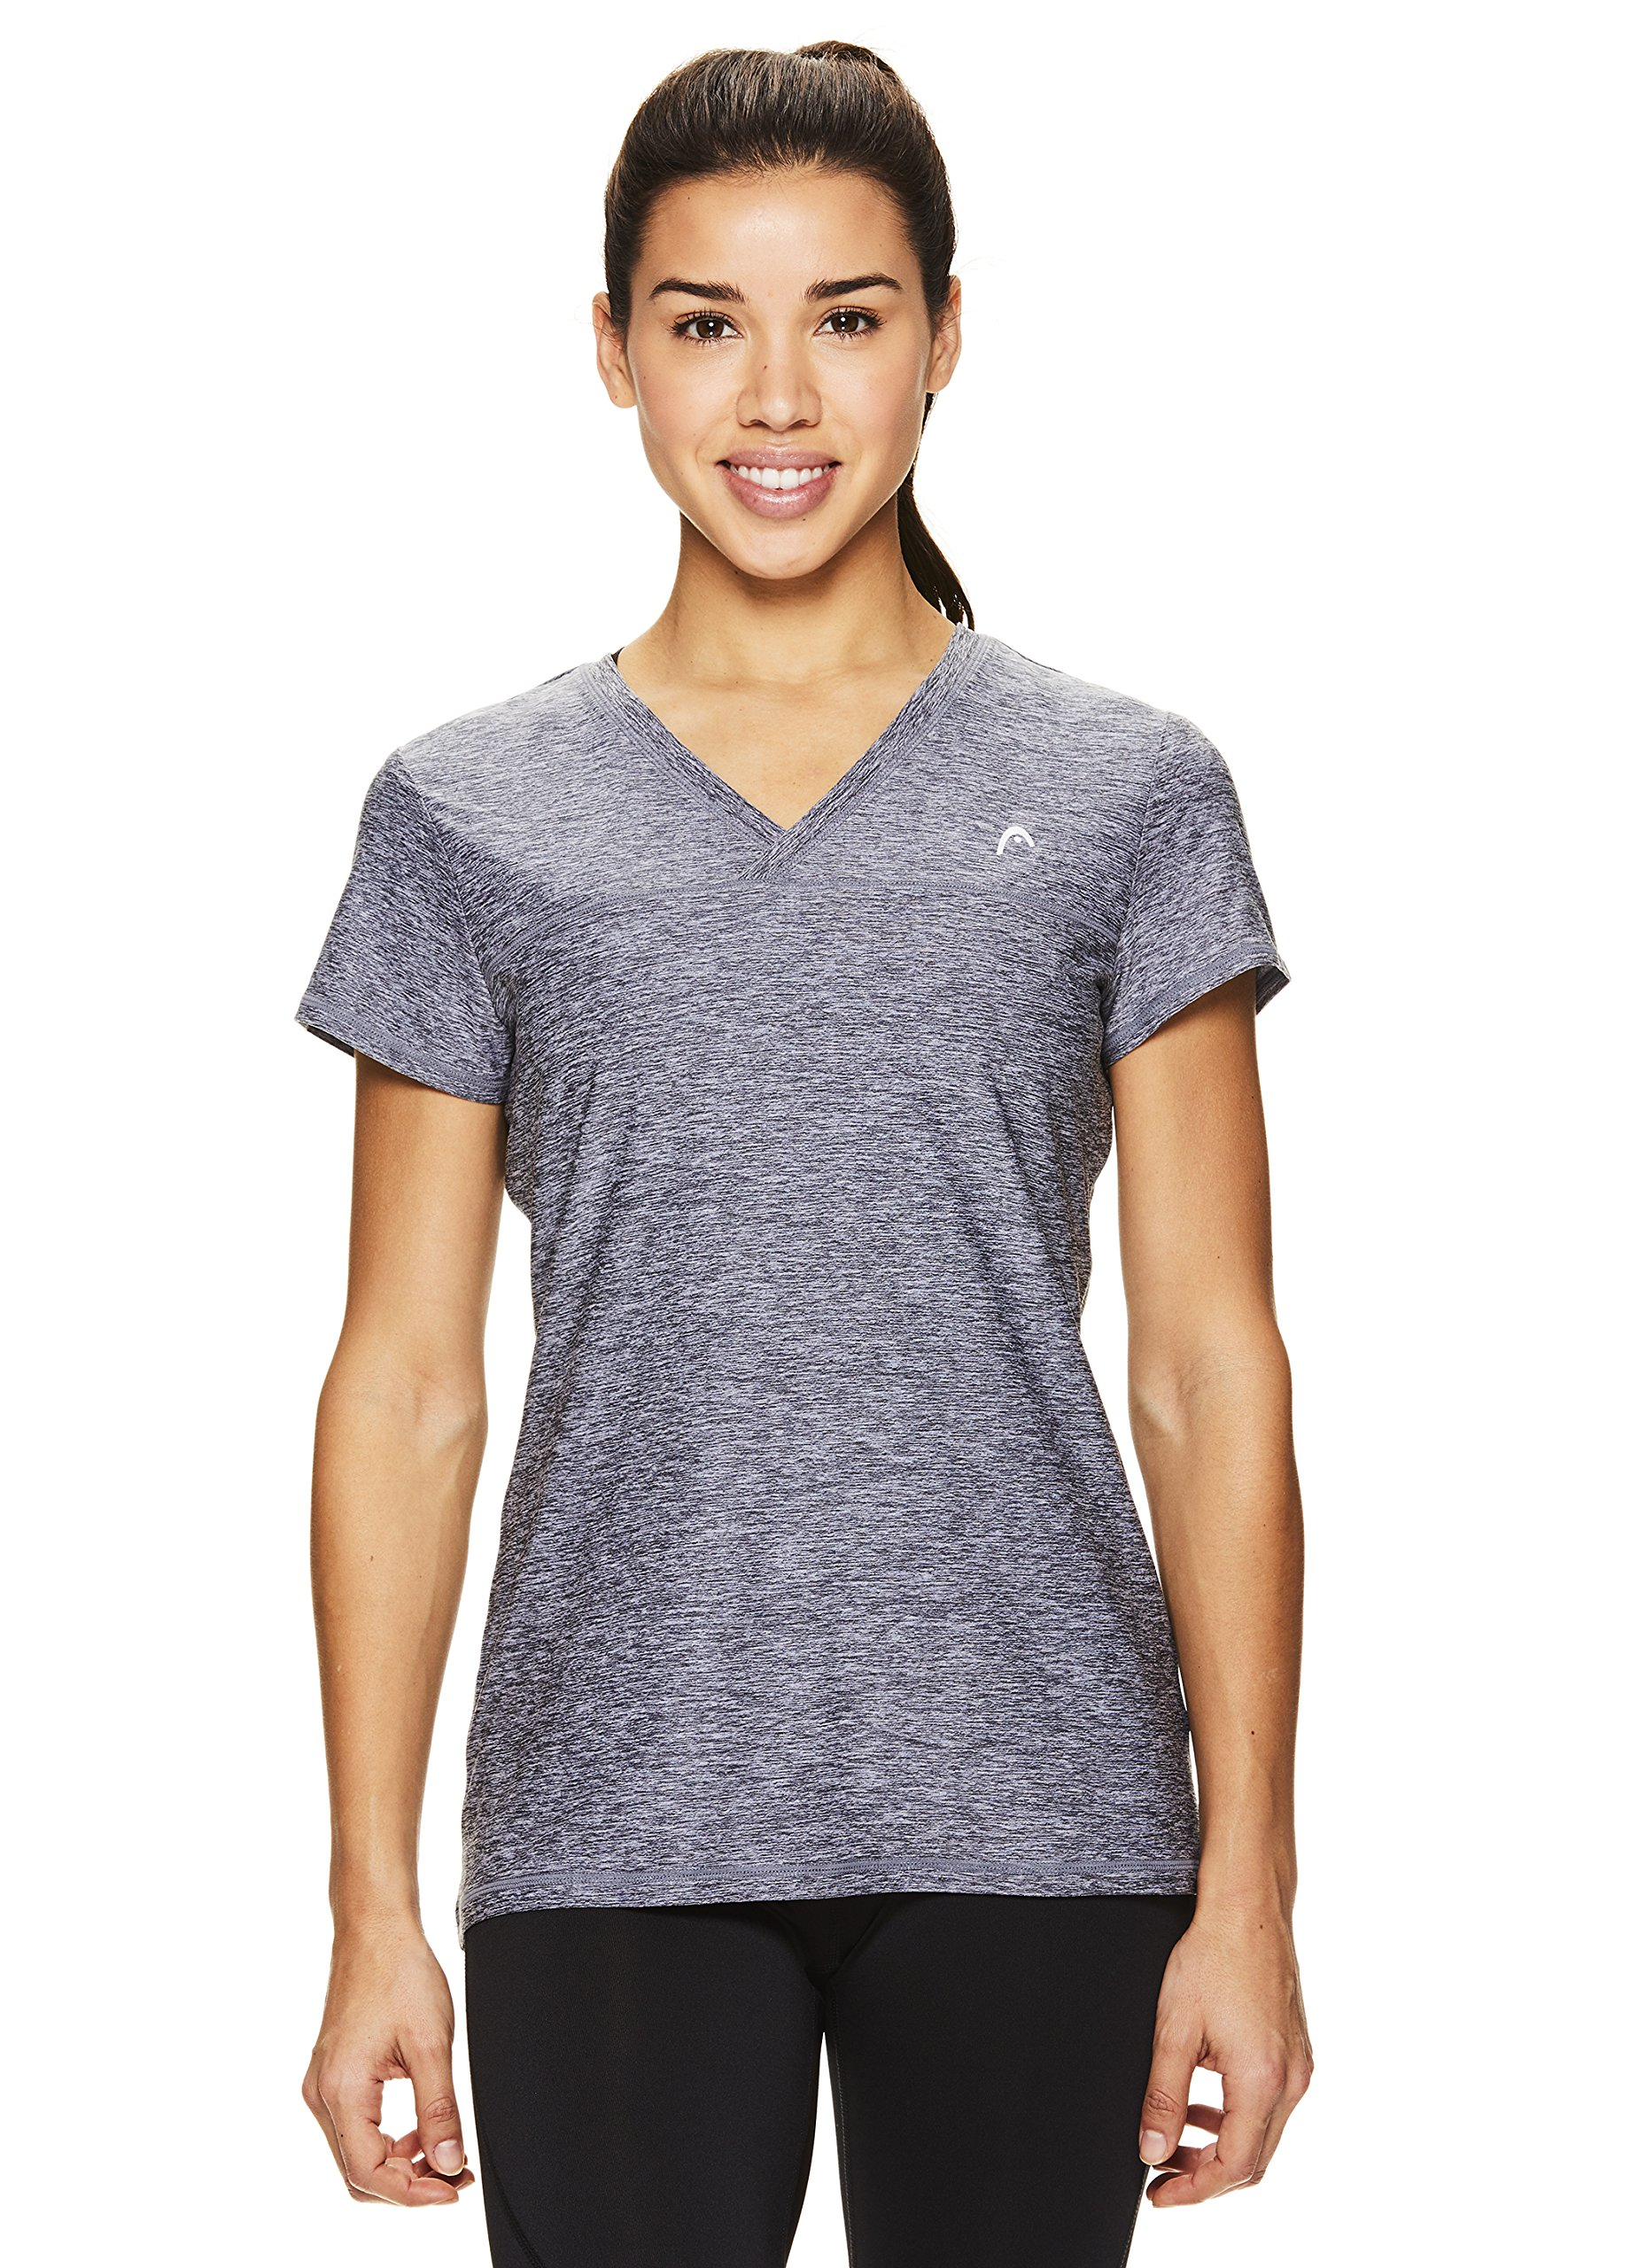 HEAD Women's High Jump Short Sleeve Workout T-Shirt - Performance V-Neck Activewear Top - Medium Grey Heather, X-Small by HEAD (Image #1)